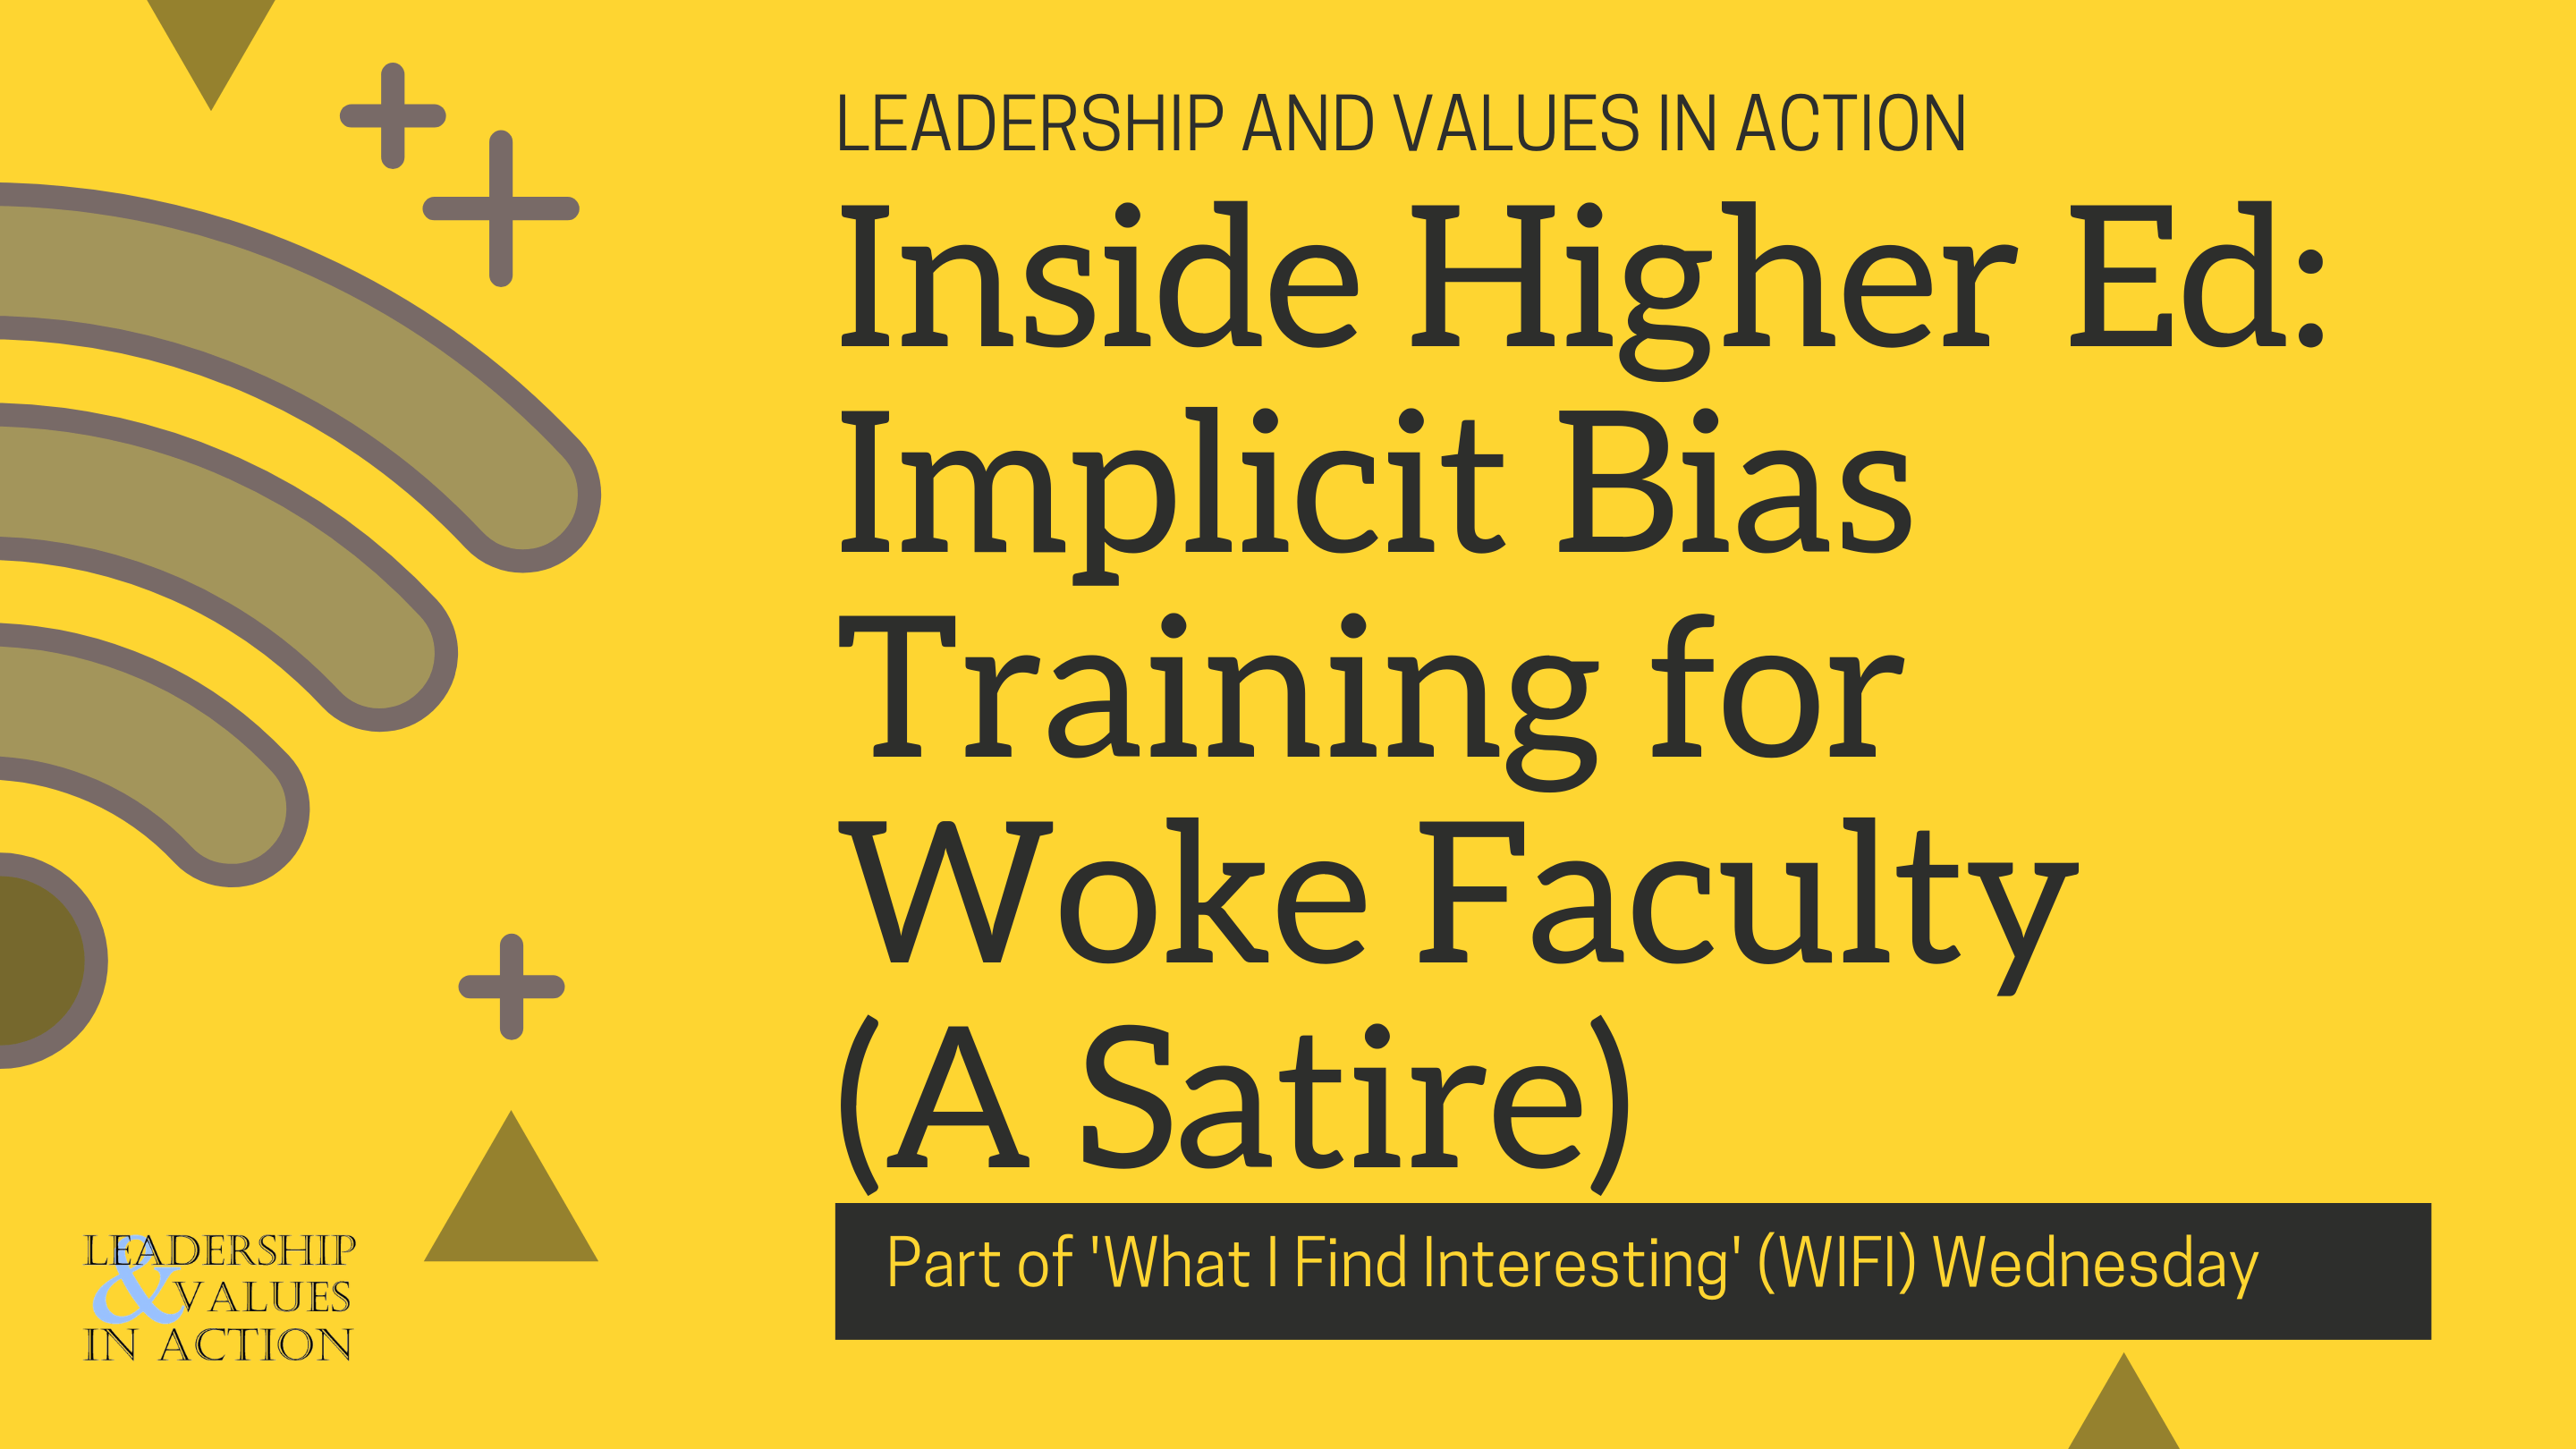 Inside Higher Ed: Implicit Bias Training for Woke Faculty (A Satire)